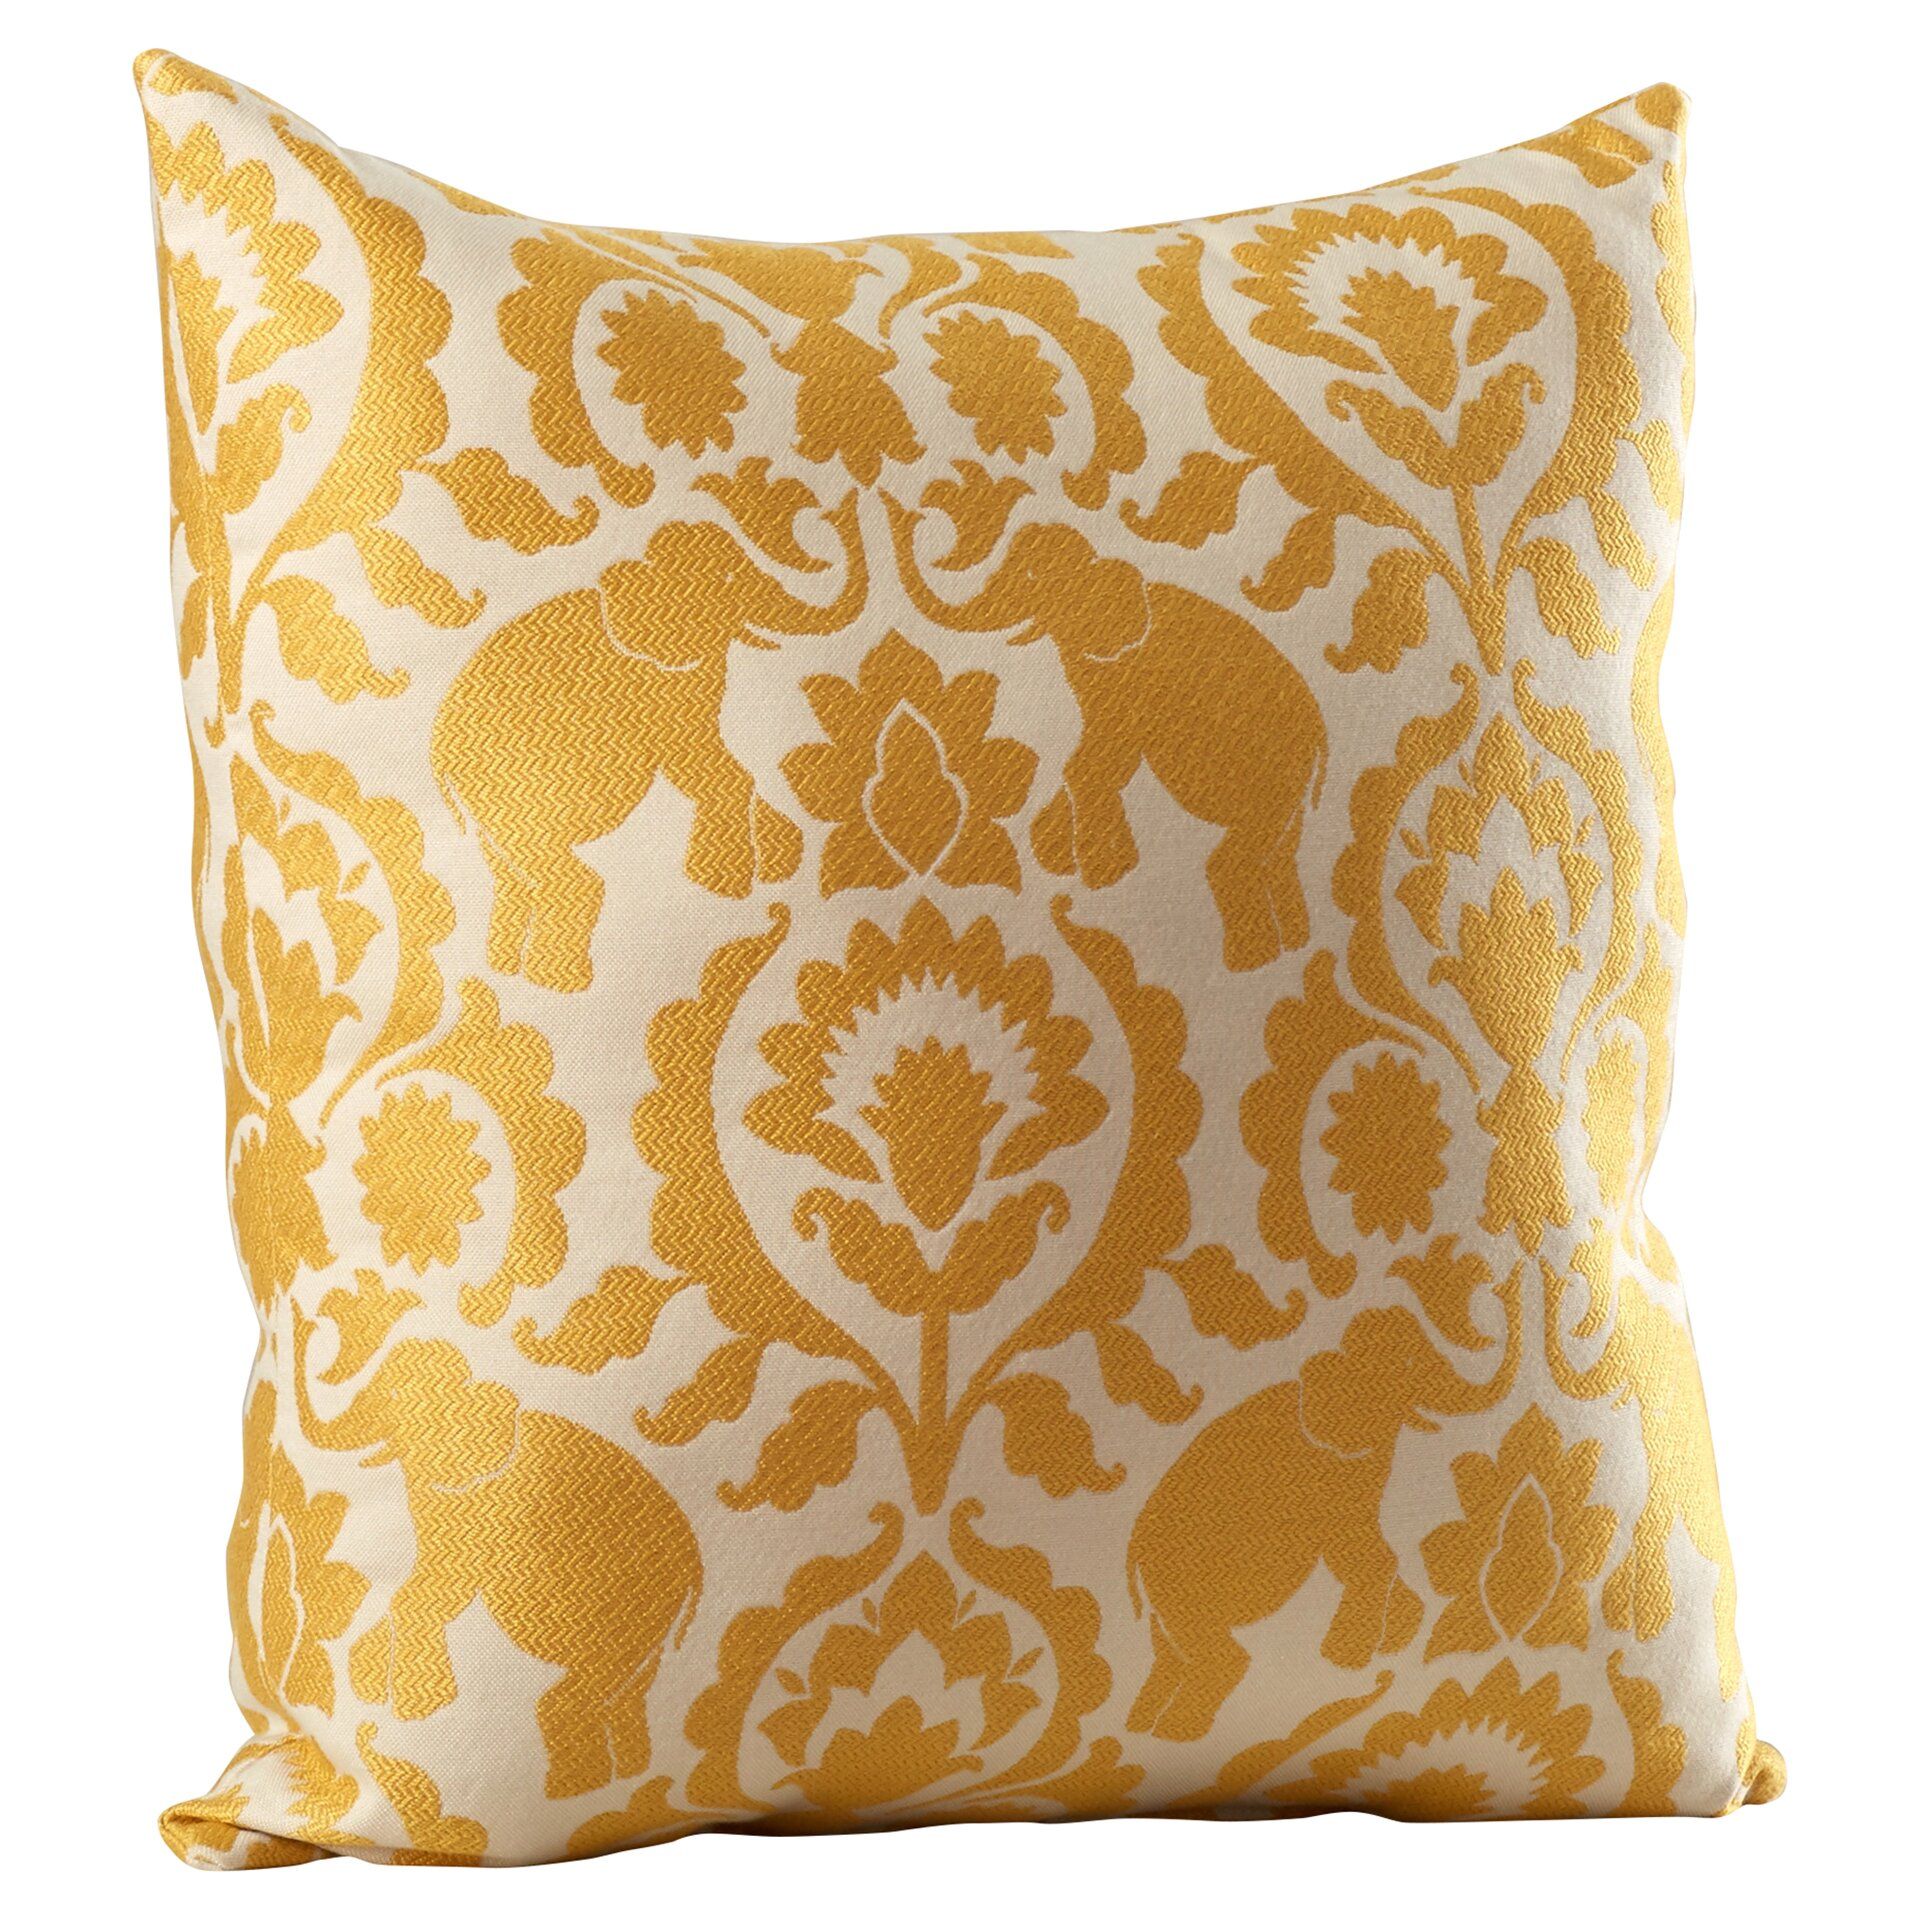 Throw Pillows Damask : Bungalow Rose Aston Damask Floral Throw Pillow & Reviews Wayfair.ca